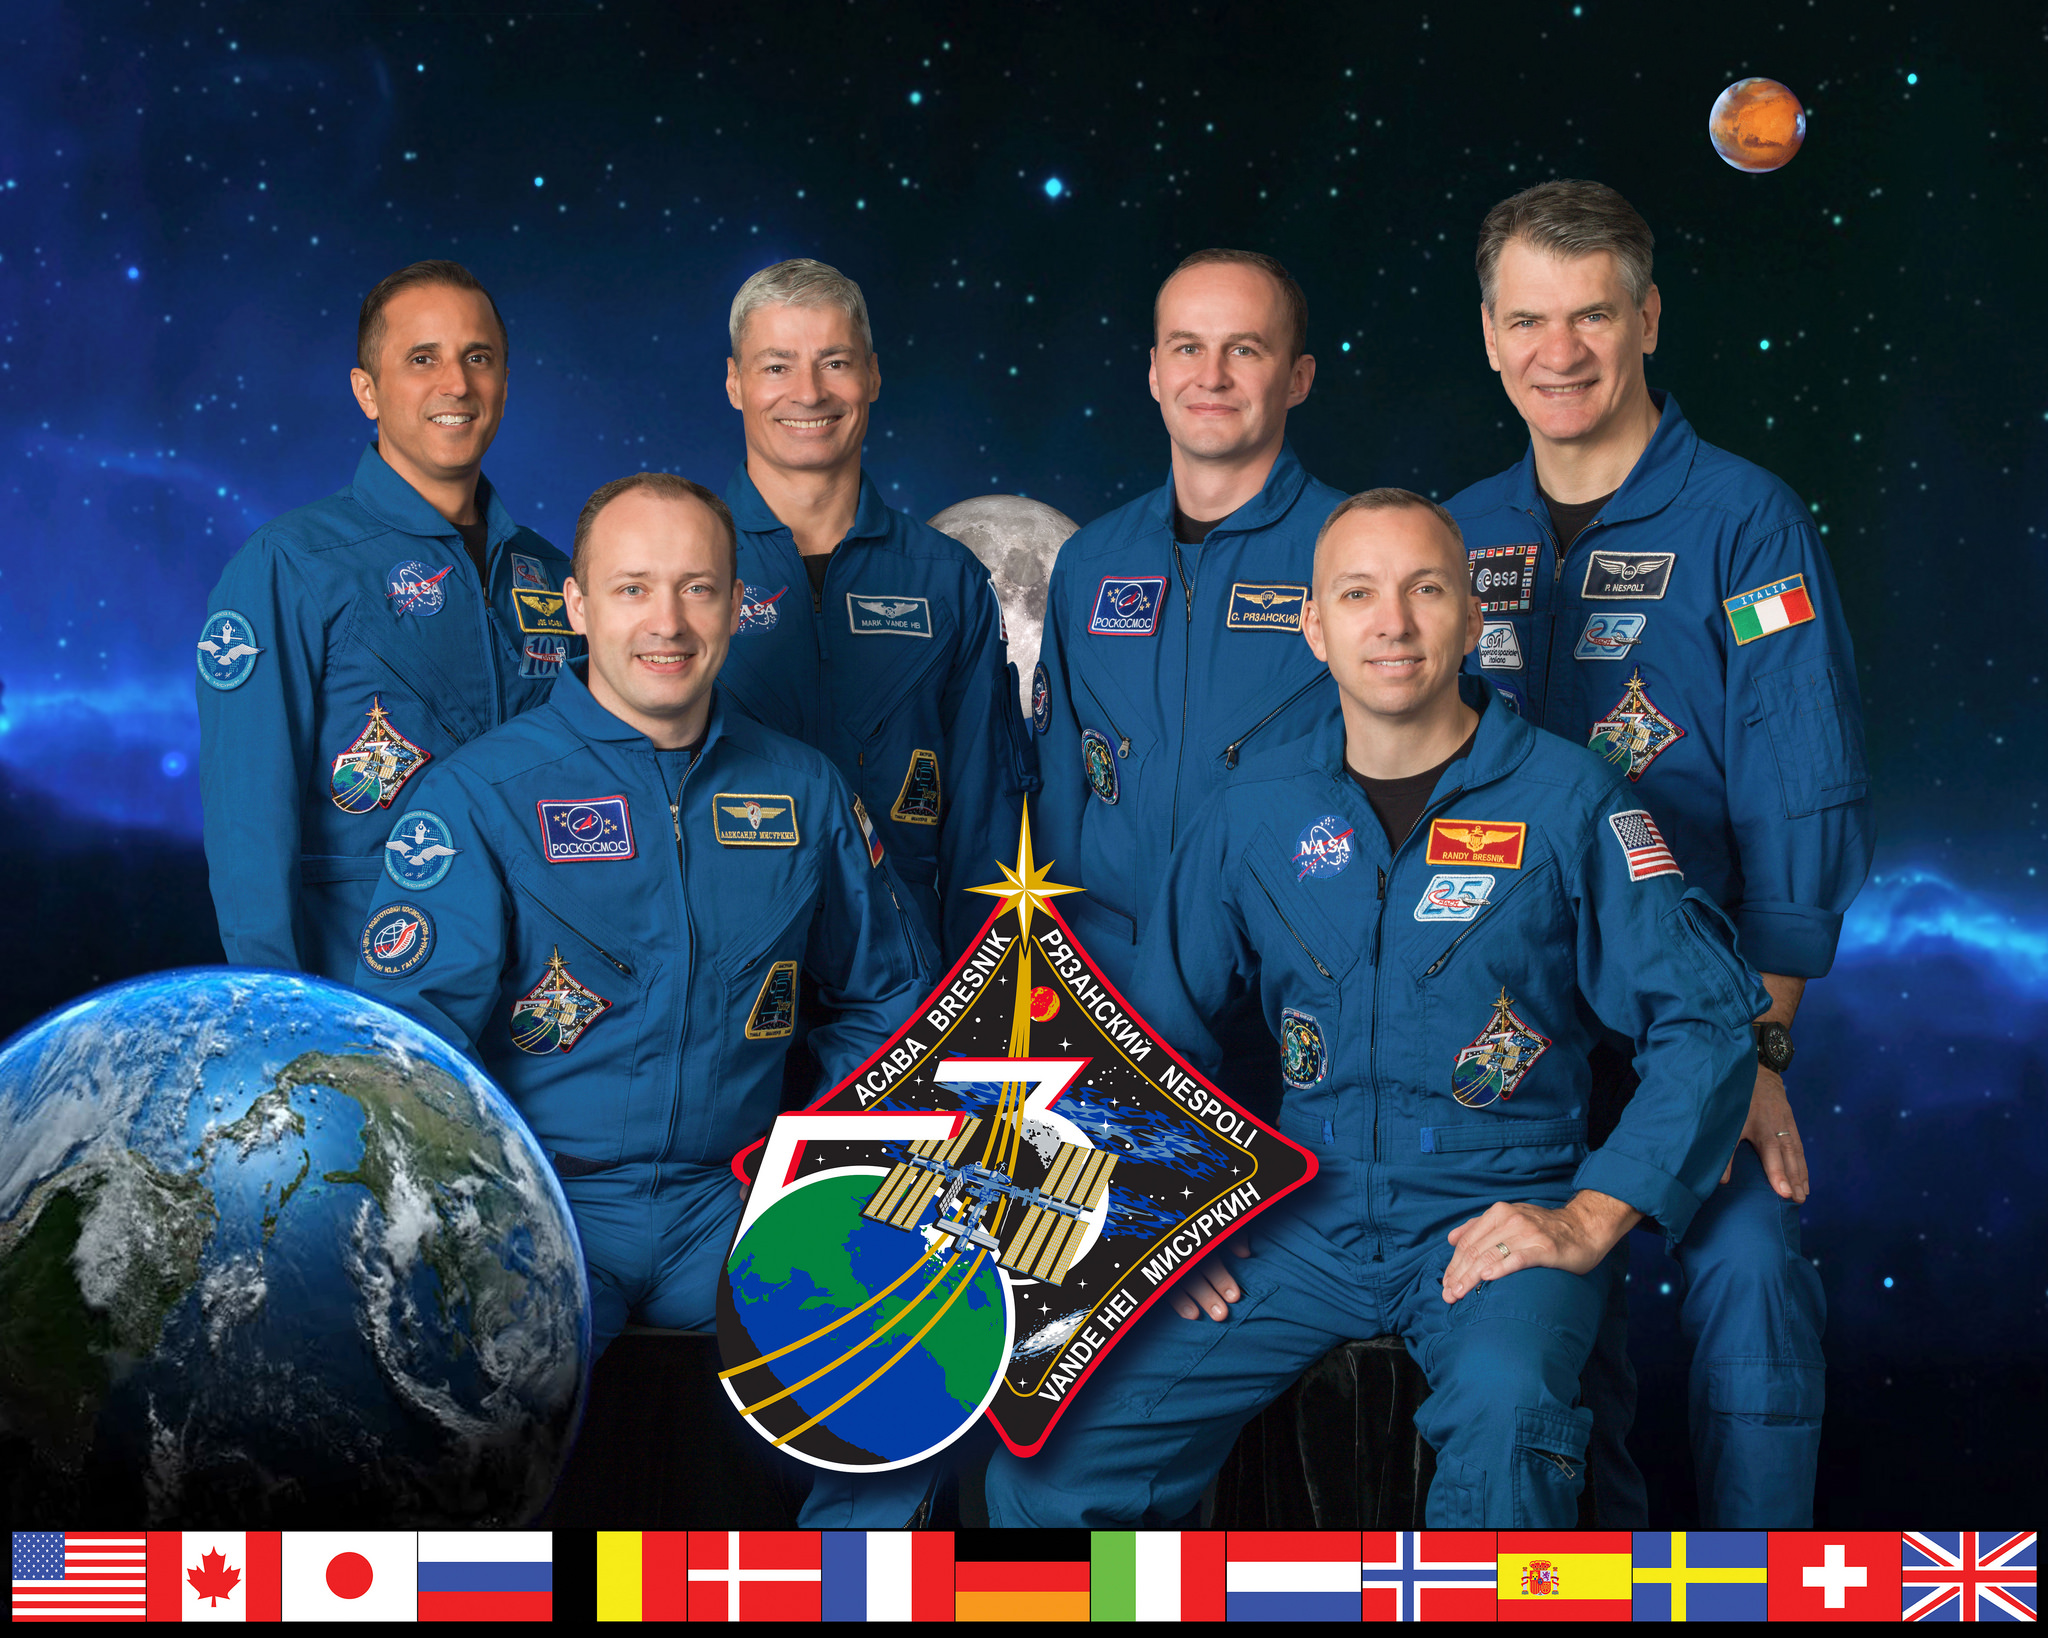 Expedition 53 Crew Members